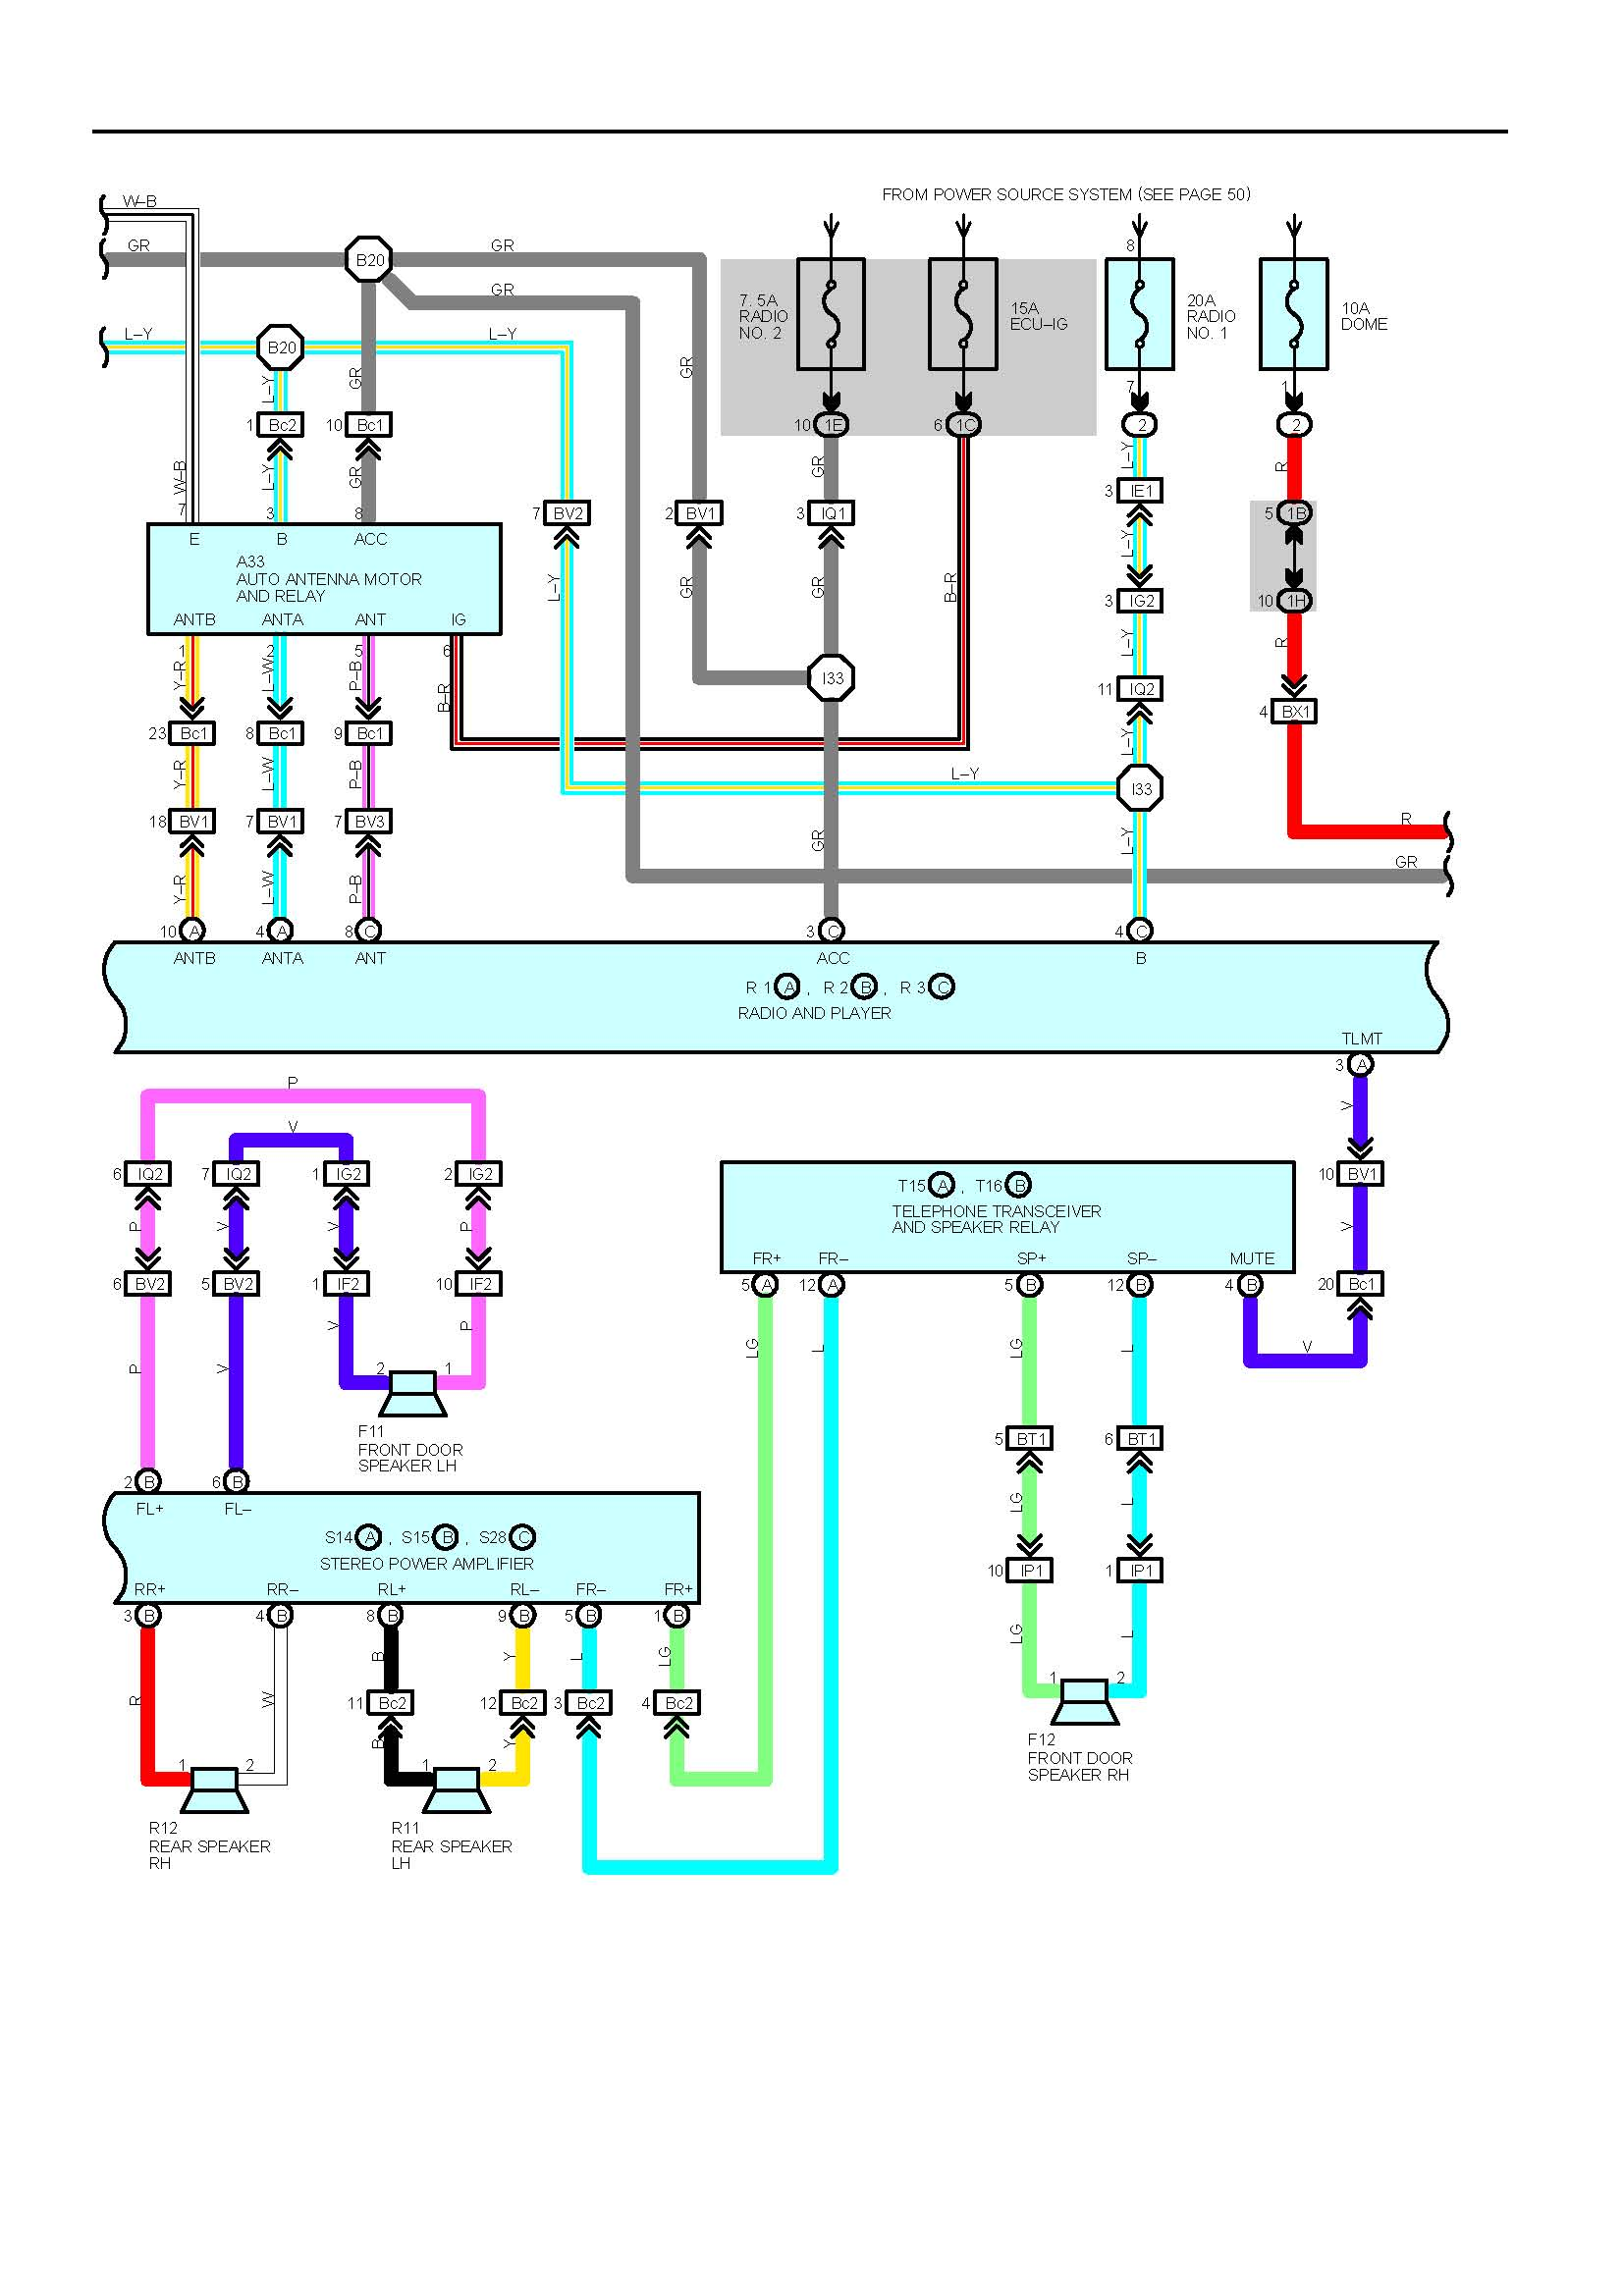 Typical Fios Wiring Diagram Electrical Work Wiring Diagram \u2022 Frontier  FiOS Ont Diagram Fios Ont Diagram